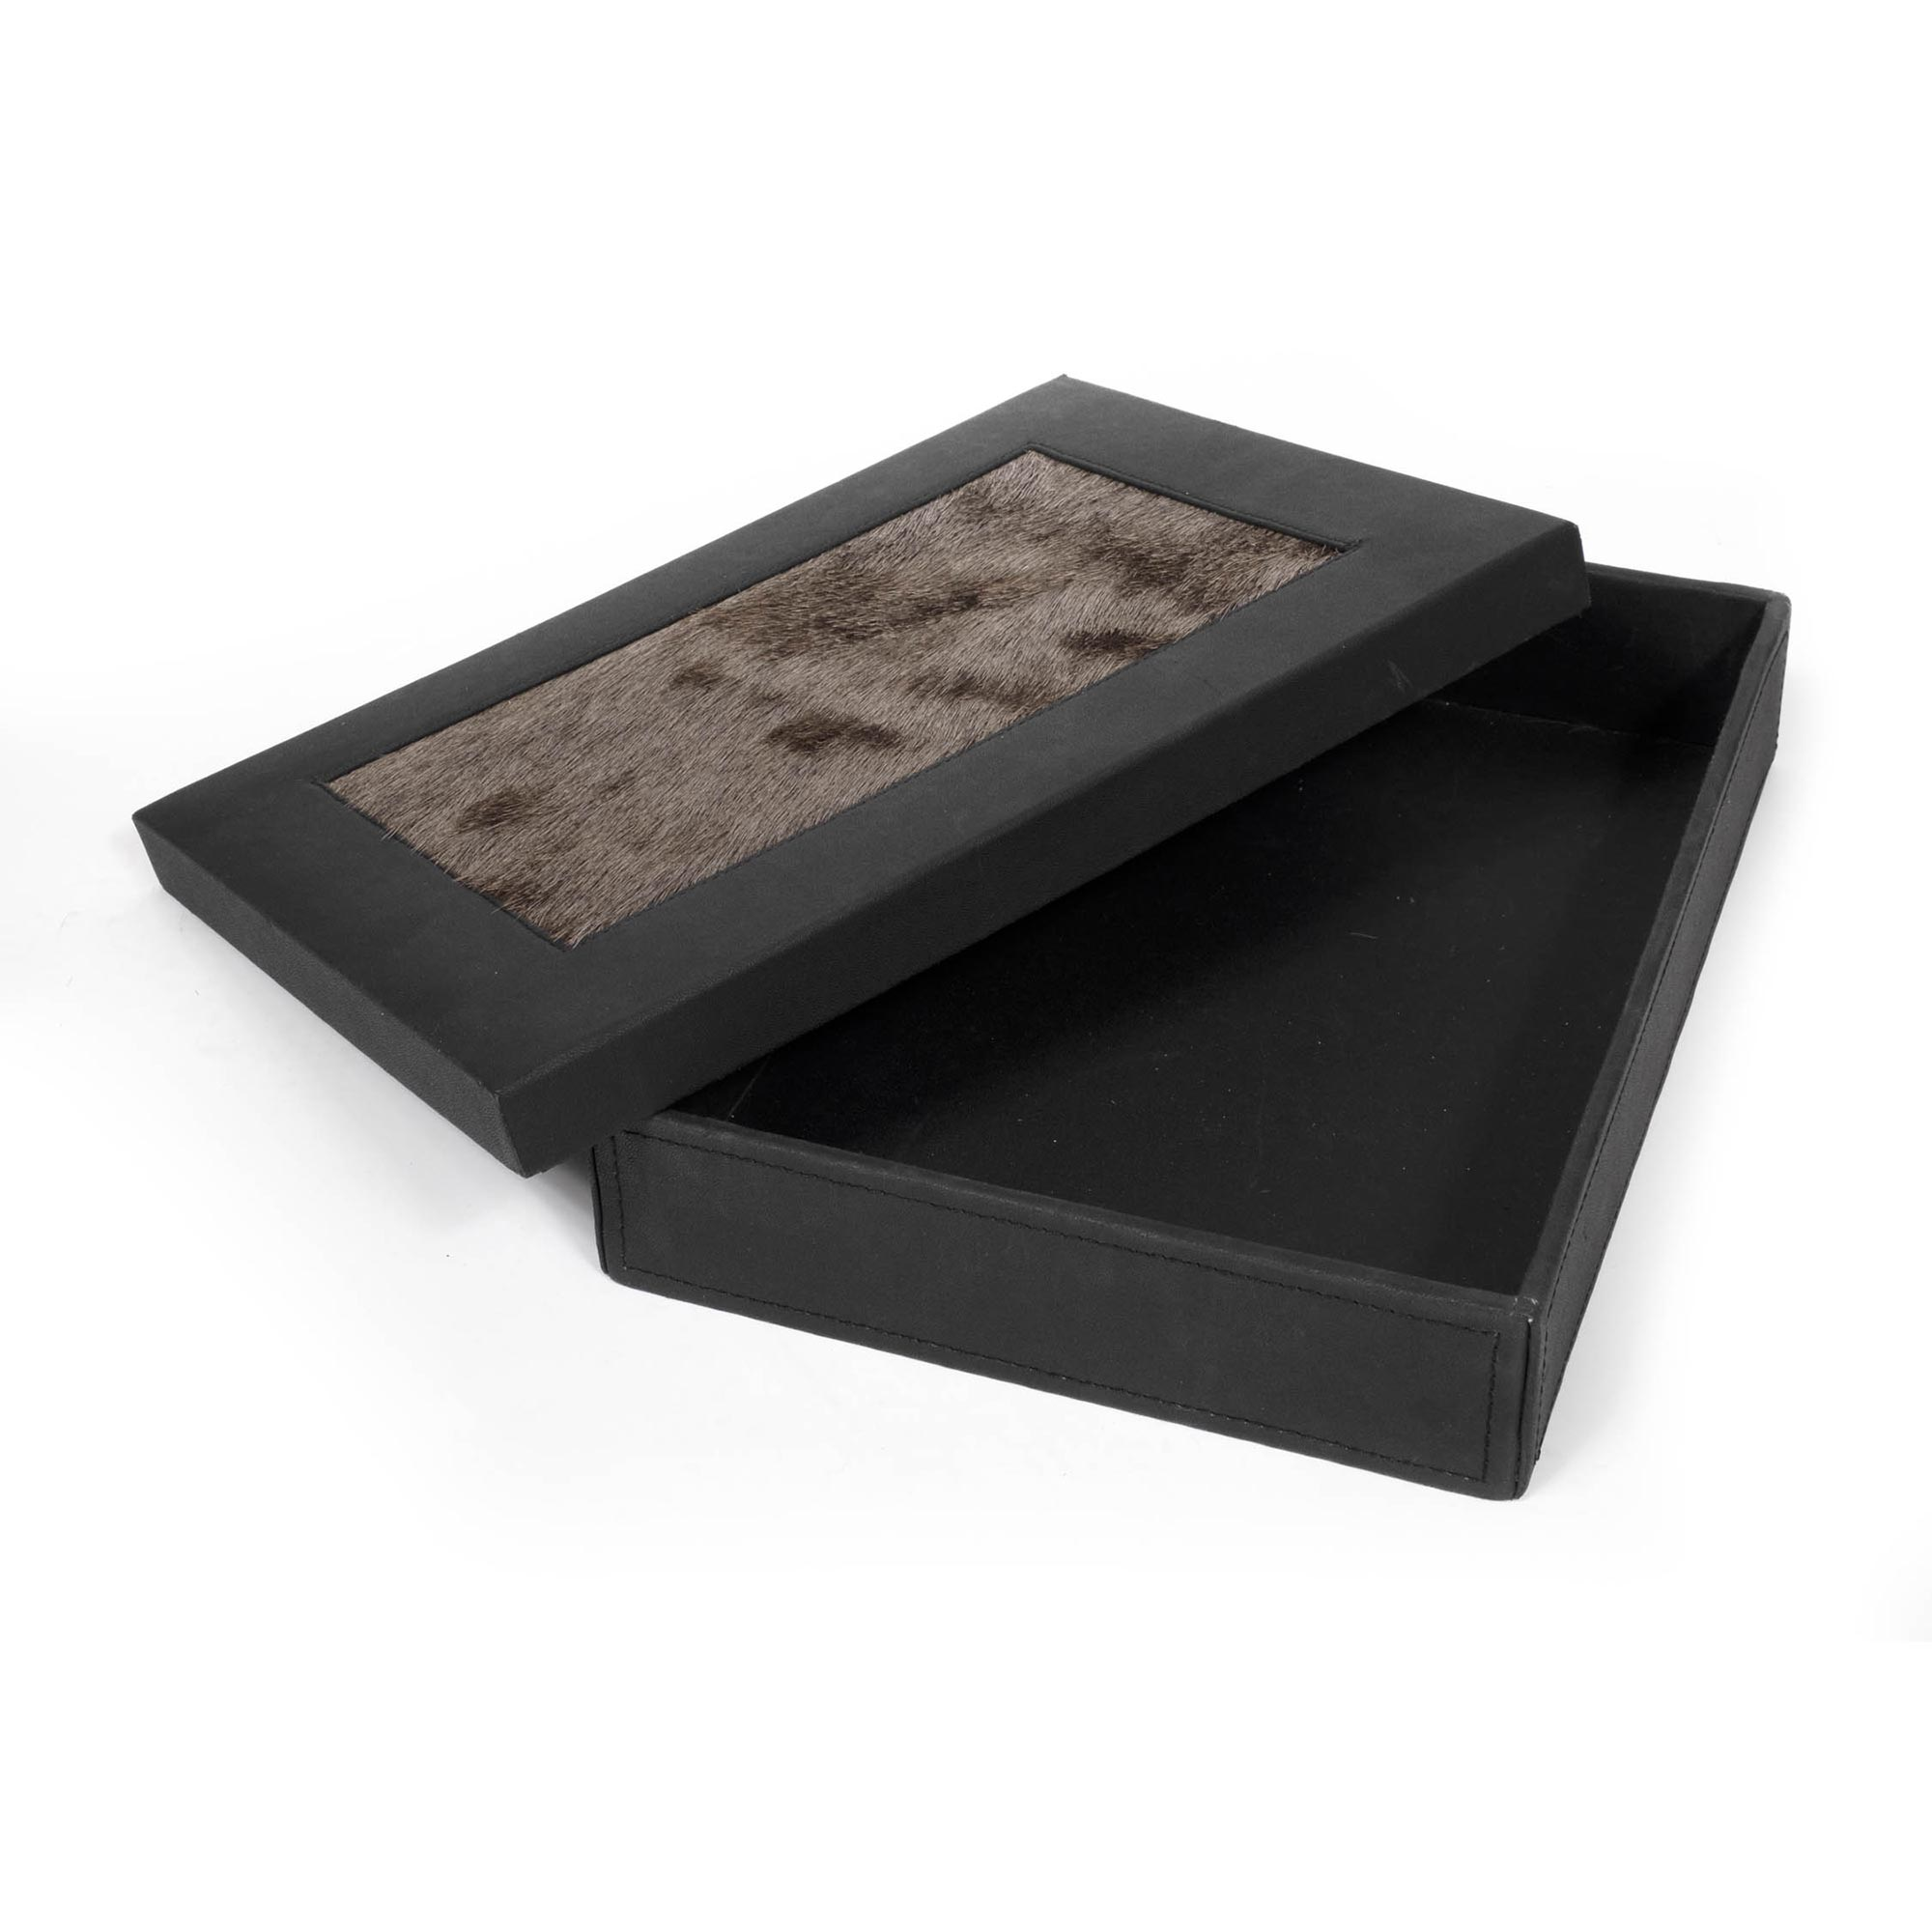 Desk Organizer Box - Wildebeest Hide